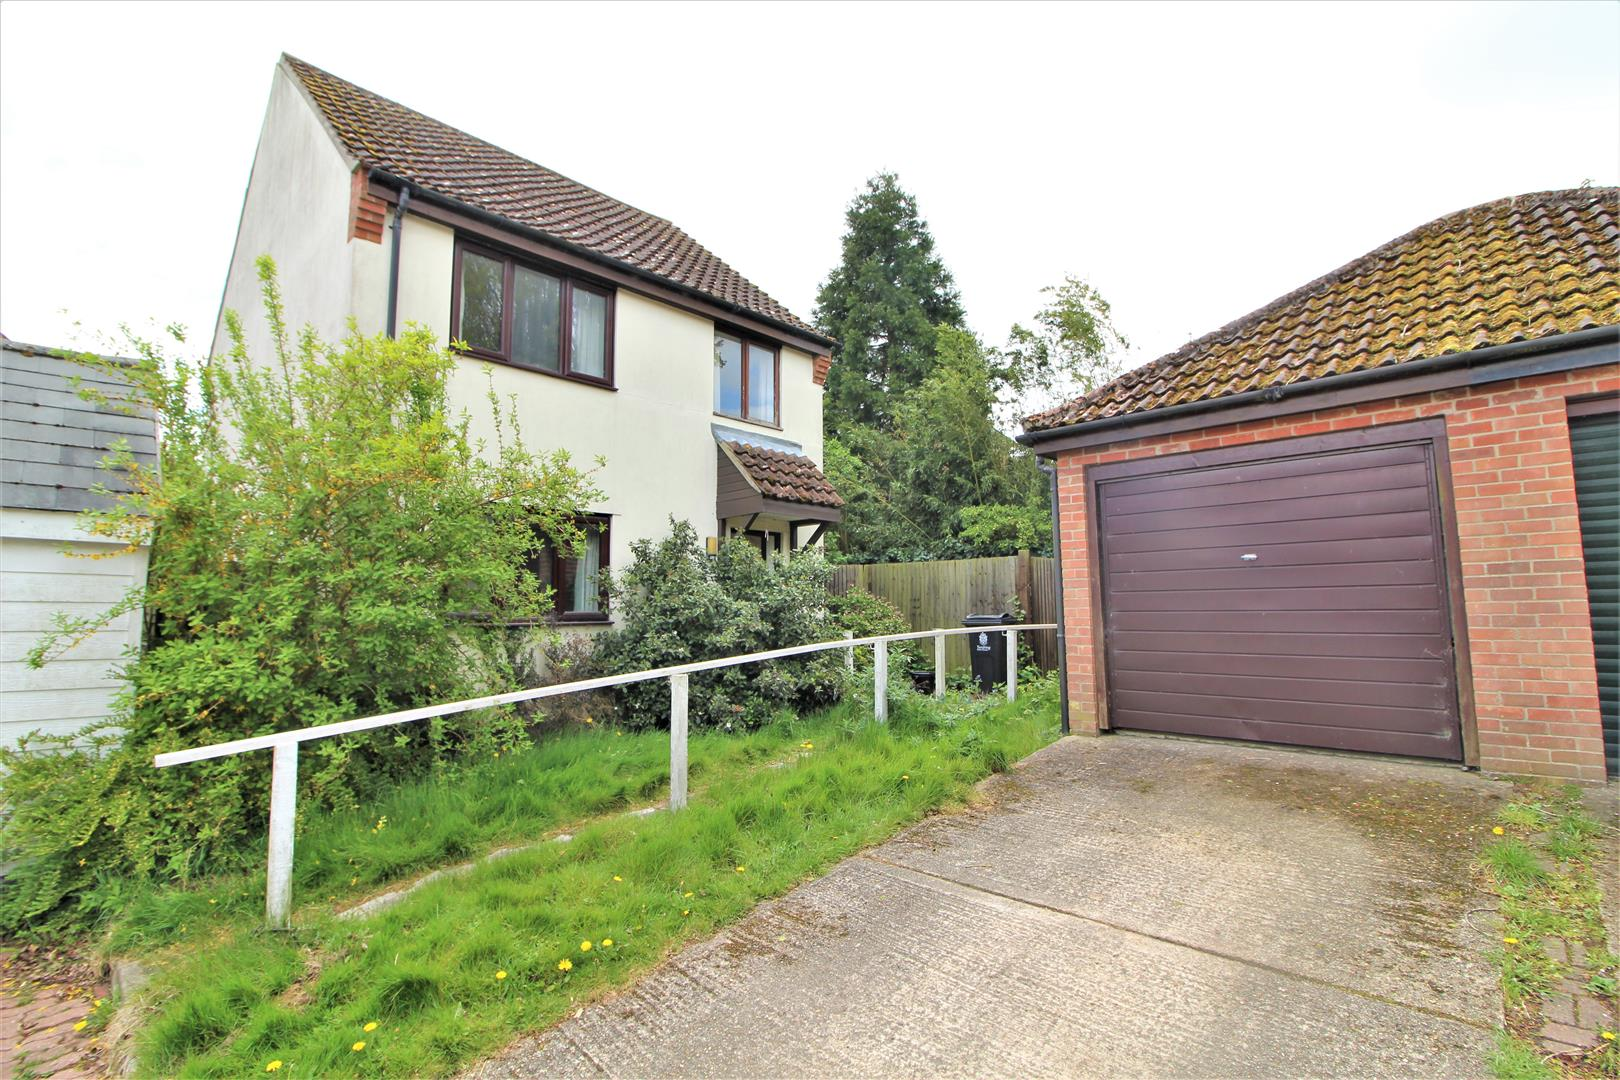 Malthouse Road, Manningtree, Essex, CO11 1BY